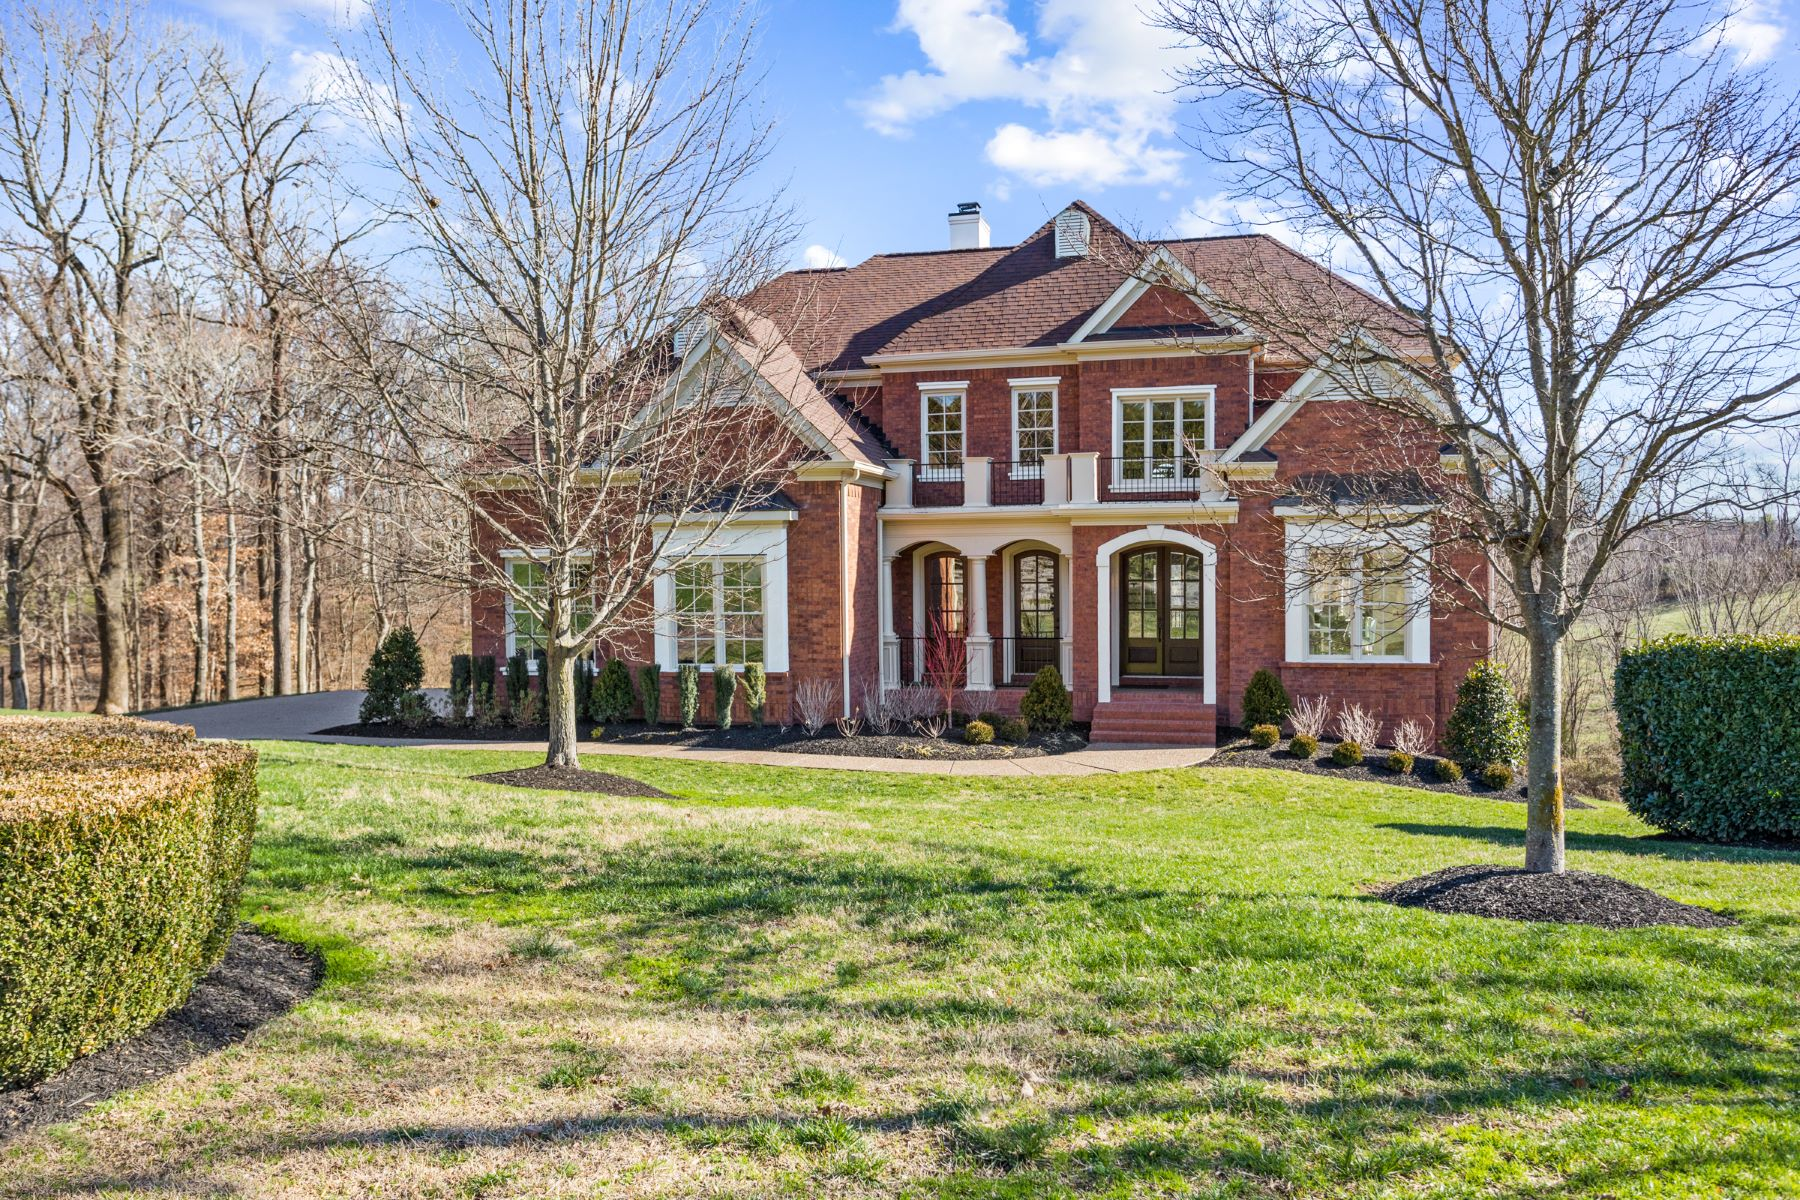 Single Family Homes for Active at Beautifully Renovated Prestwick Place 6 Prestwick Place Brentwood, Tennessee 37027 United States